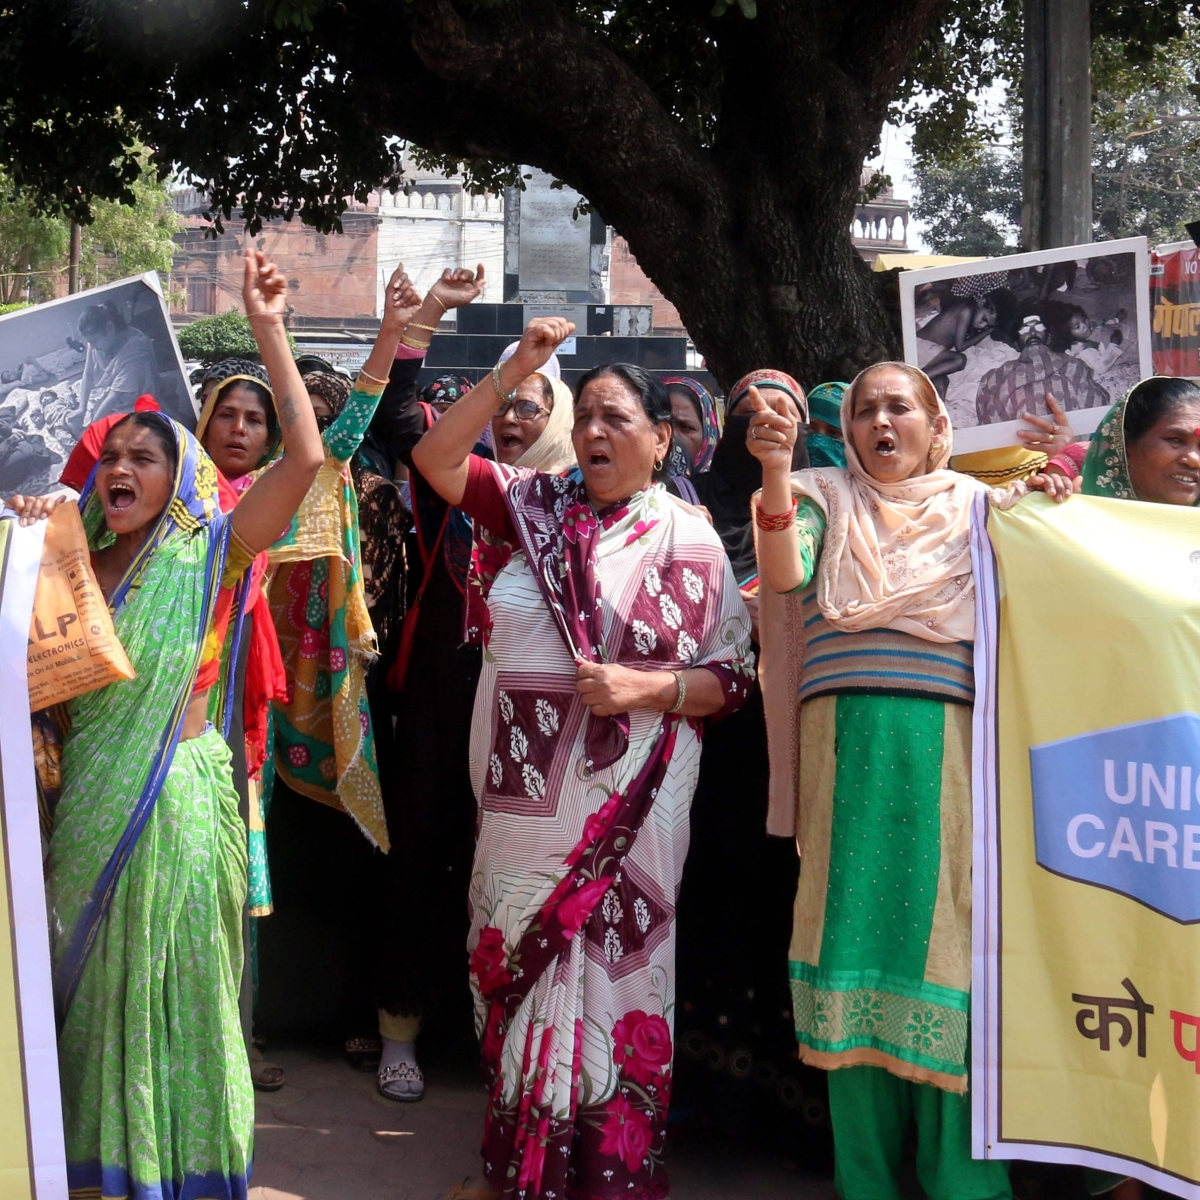 Bhopal Gas tragedy survivors take to streets as Trump arrives